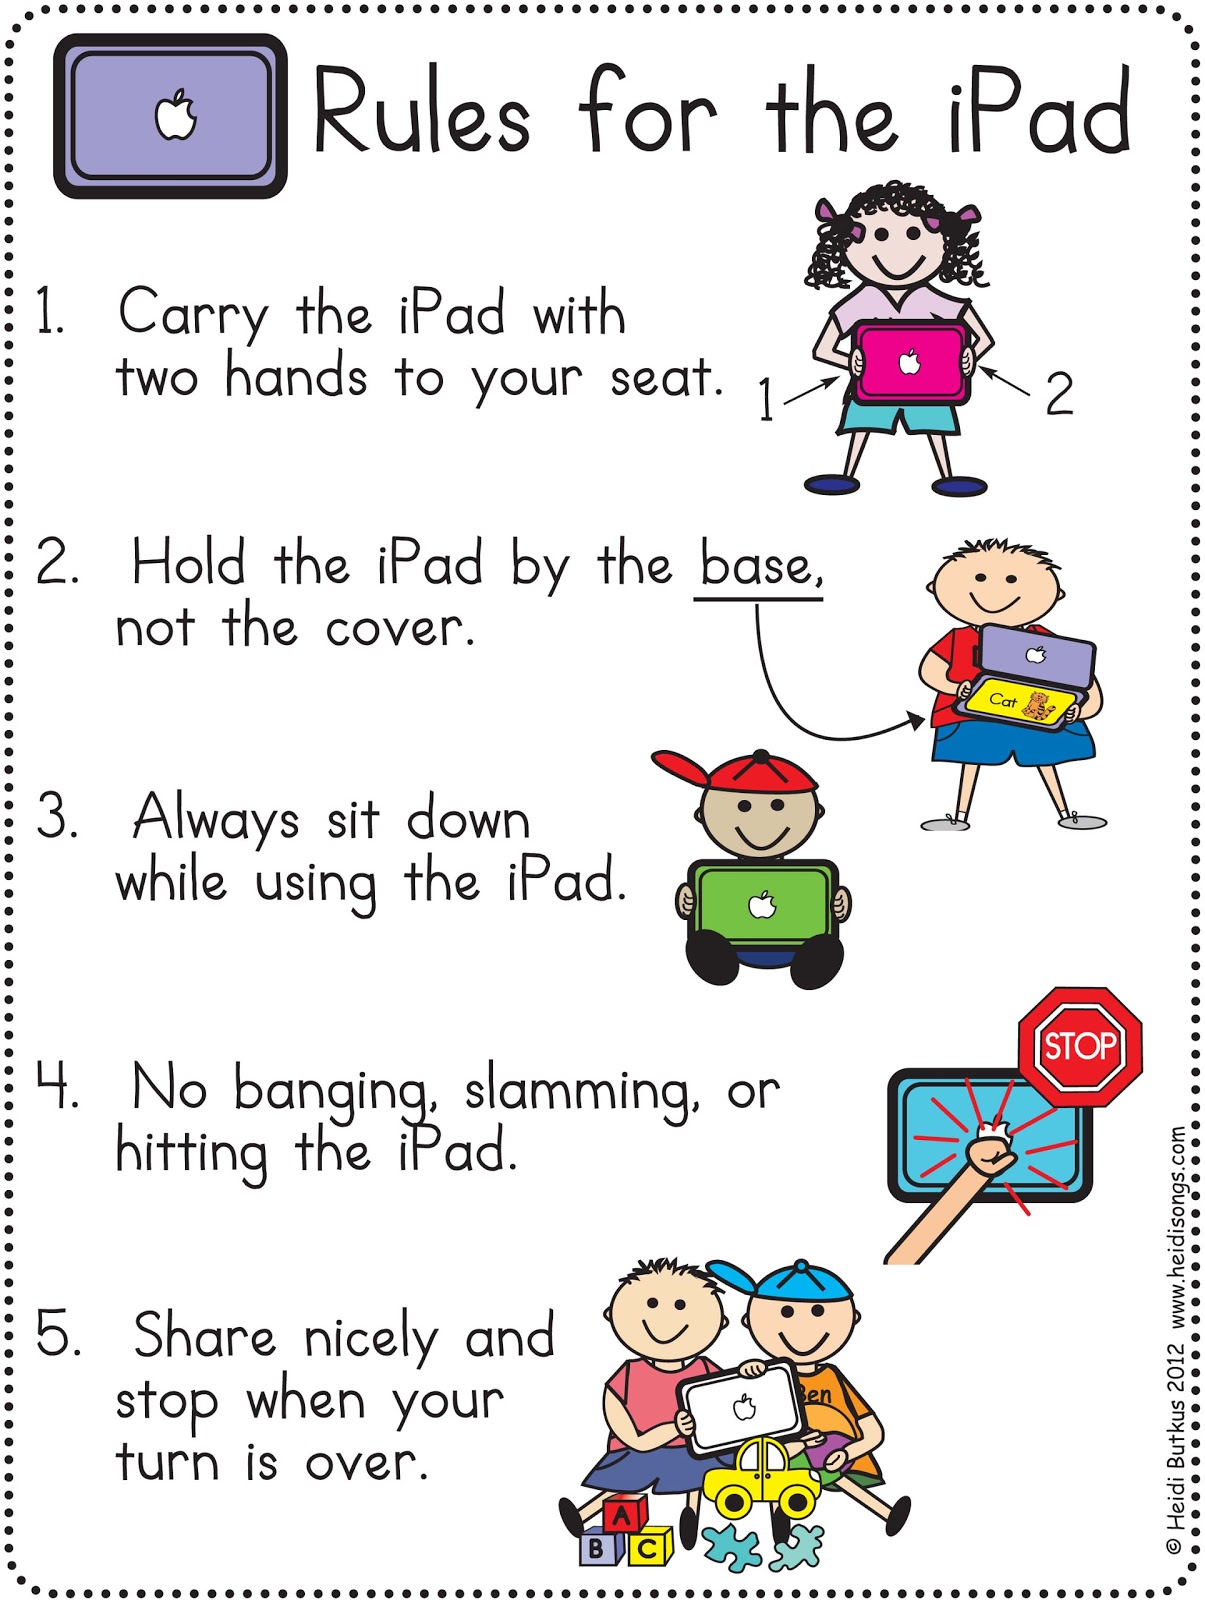 Playground rules clipart.